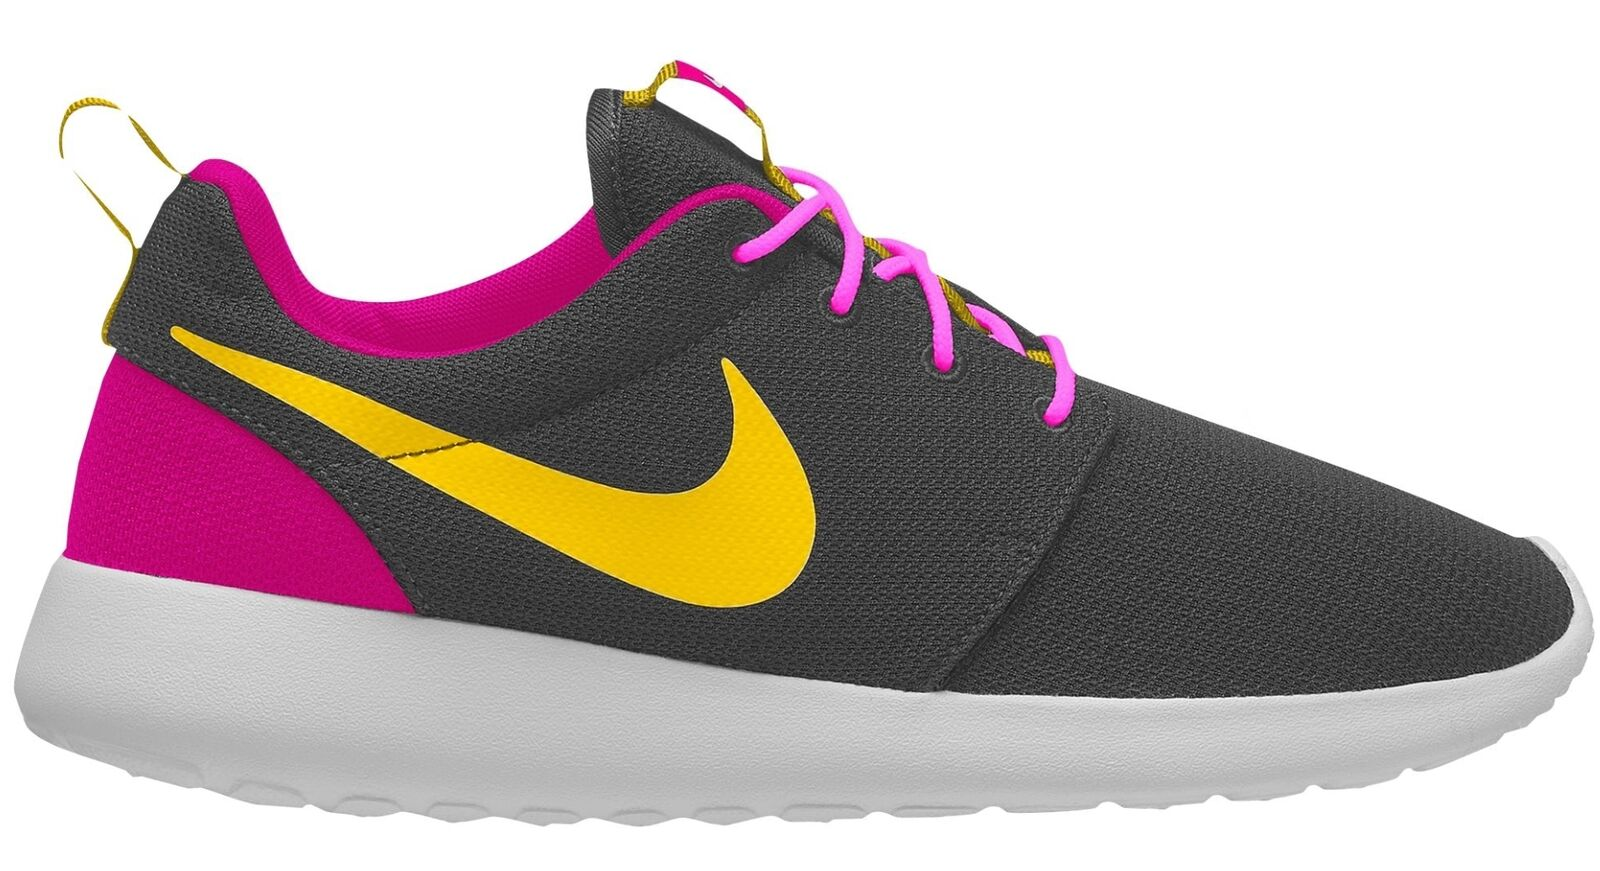 Nike Roshe One Mens 511881-035 Anthracite Magenta Yellow Running Shoes Size 7.5